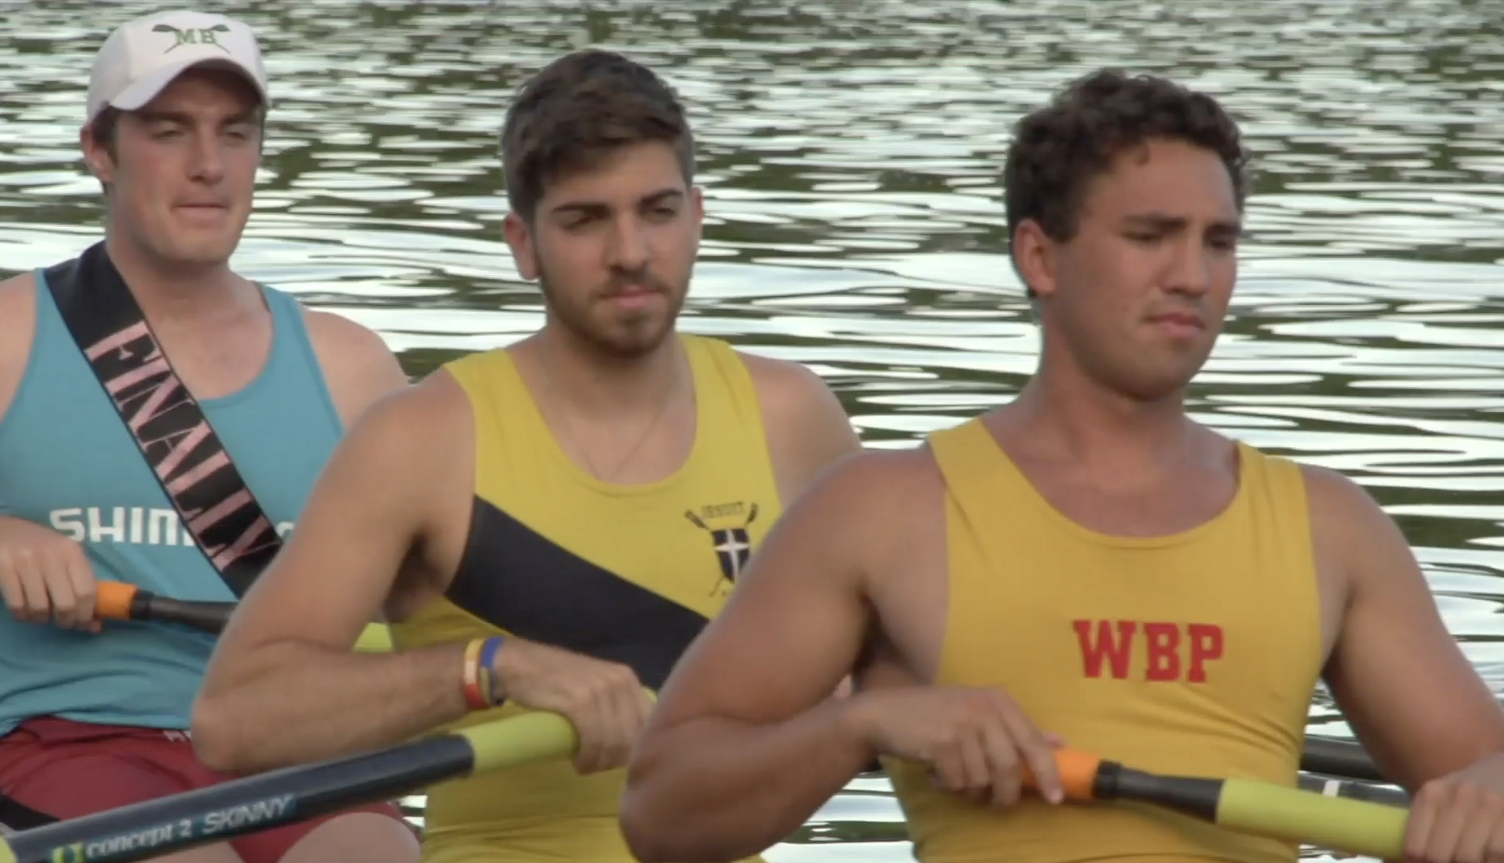 Owl Access Granted: Temple Men's Crew - Episode 1